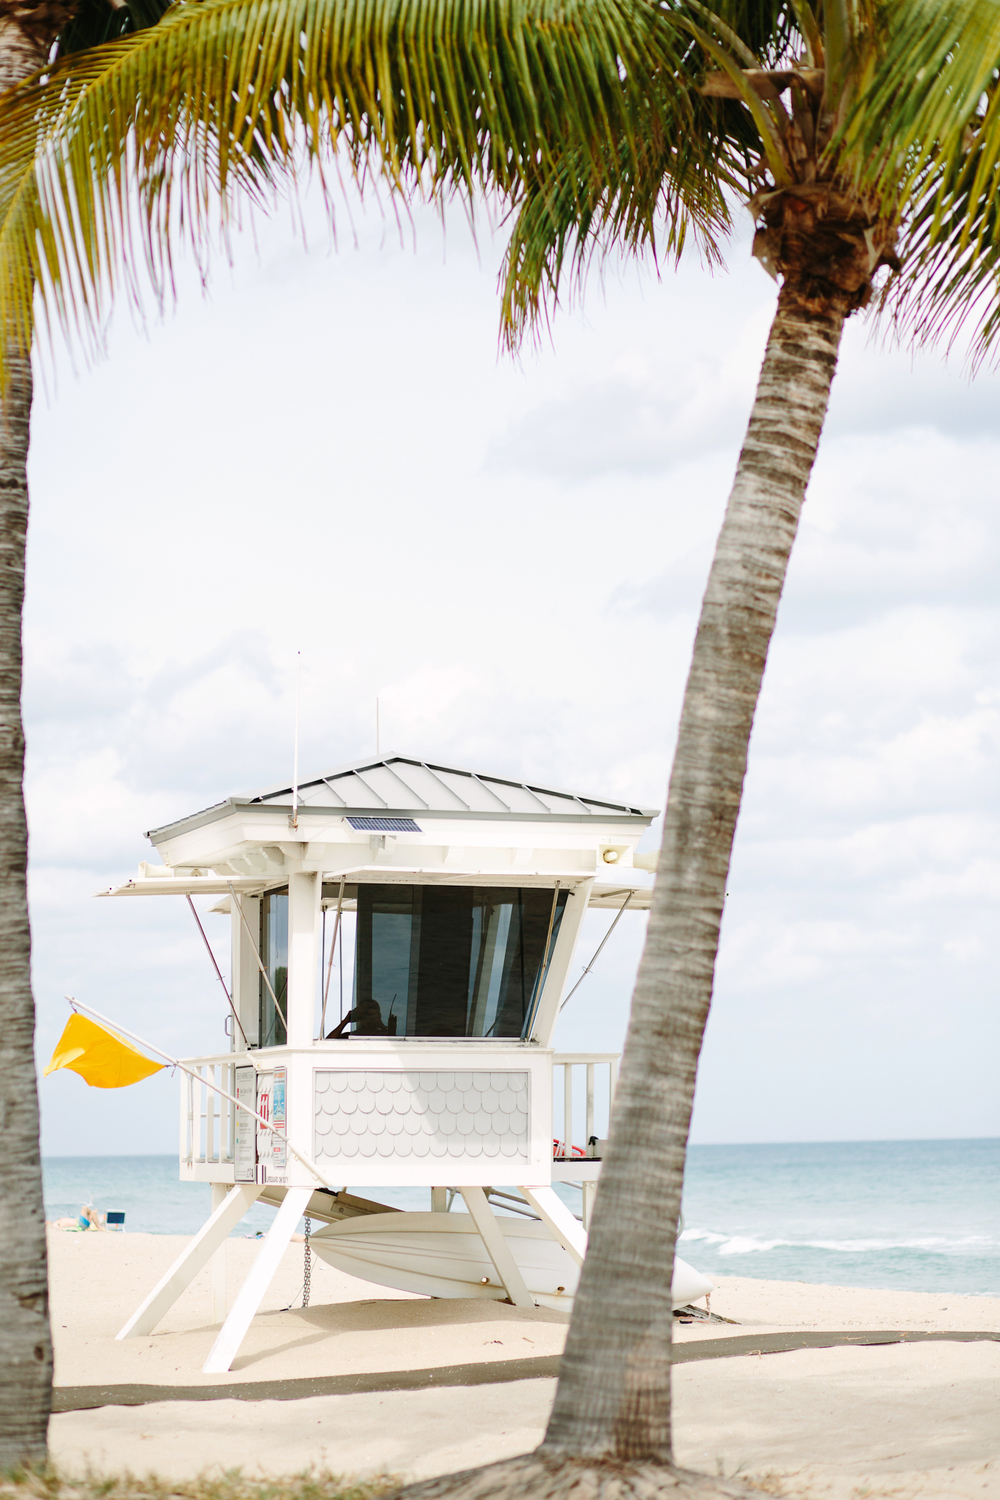 Fort Lauderdale Beach Florida Lifeguard